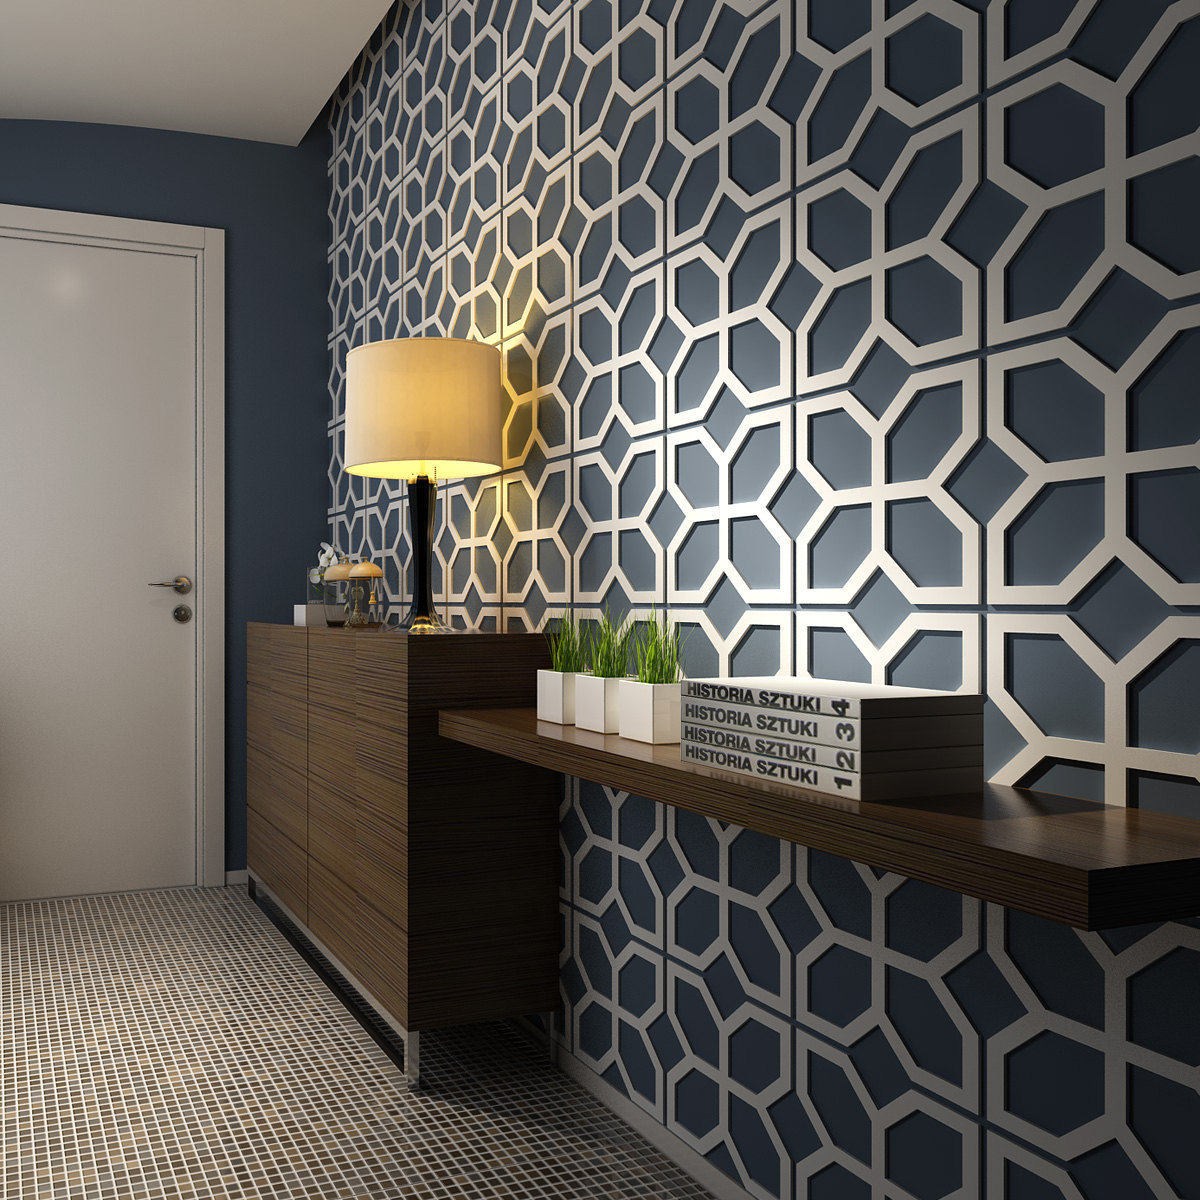 Genial Flowers   3D Wall Panels   Panele 3D   Wall Paneling   Decorative Wall  Panels